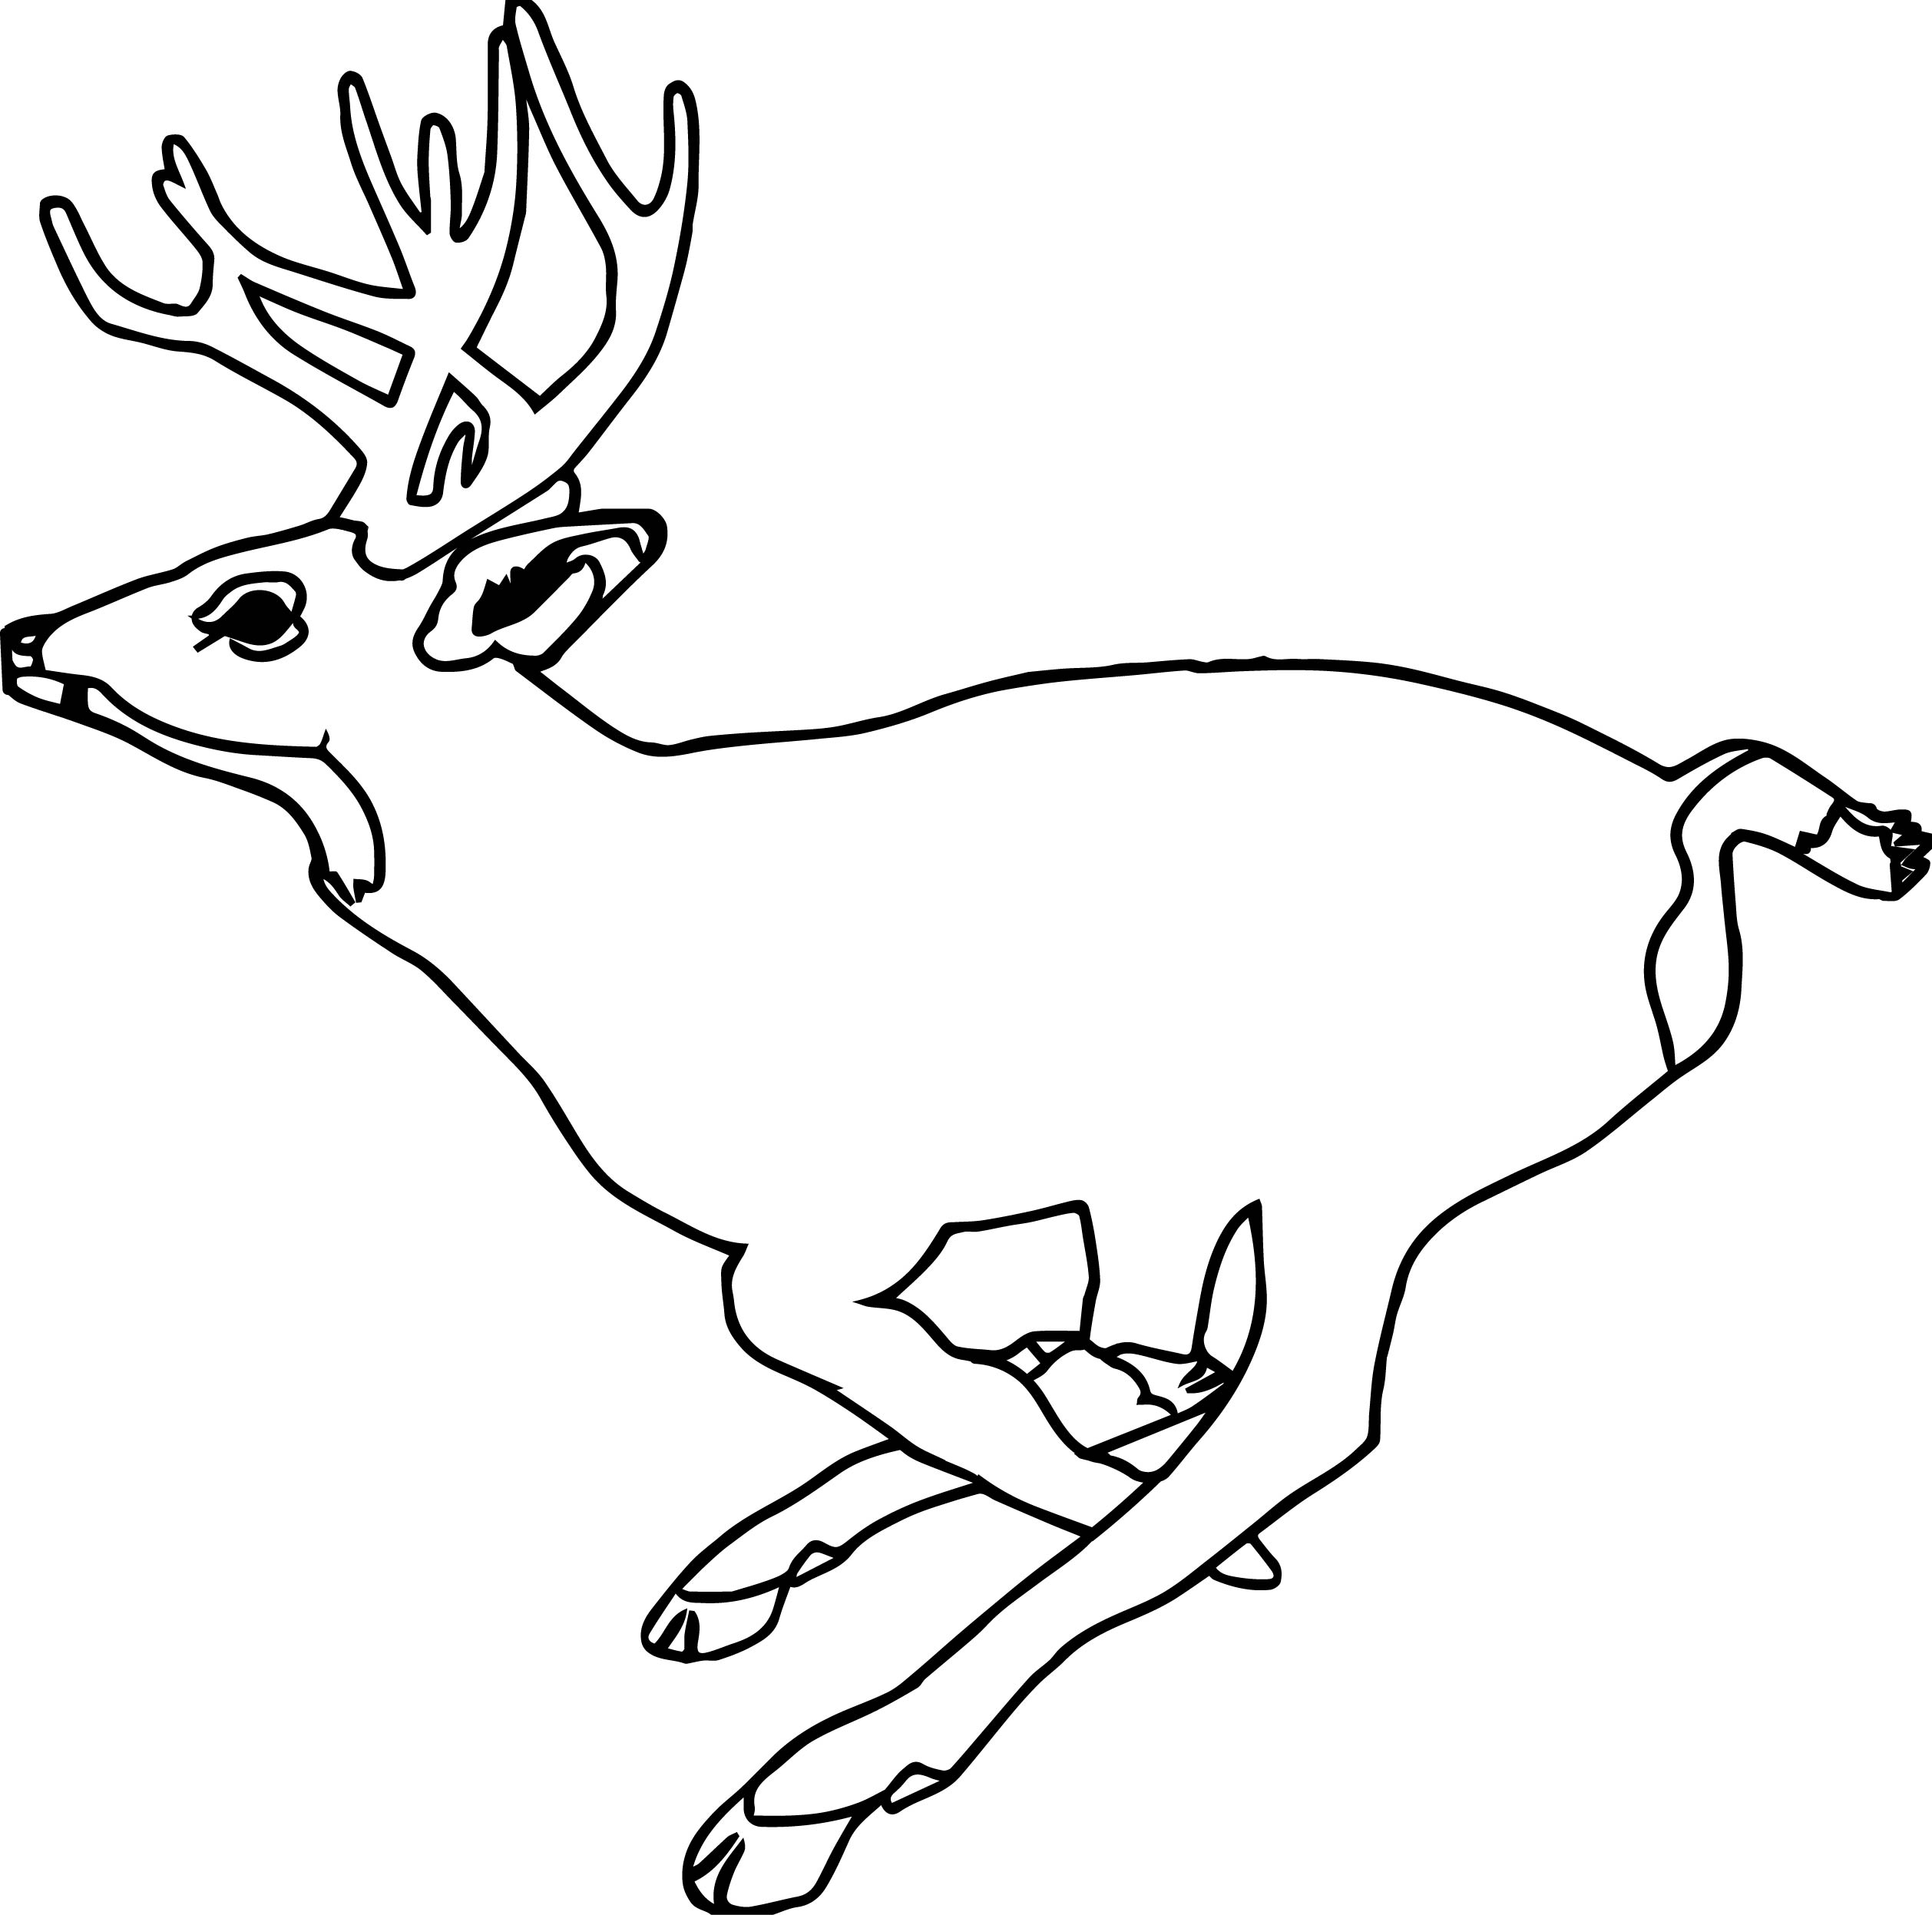 Realistic Zoo Galloping Deer Runned Coloring Page